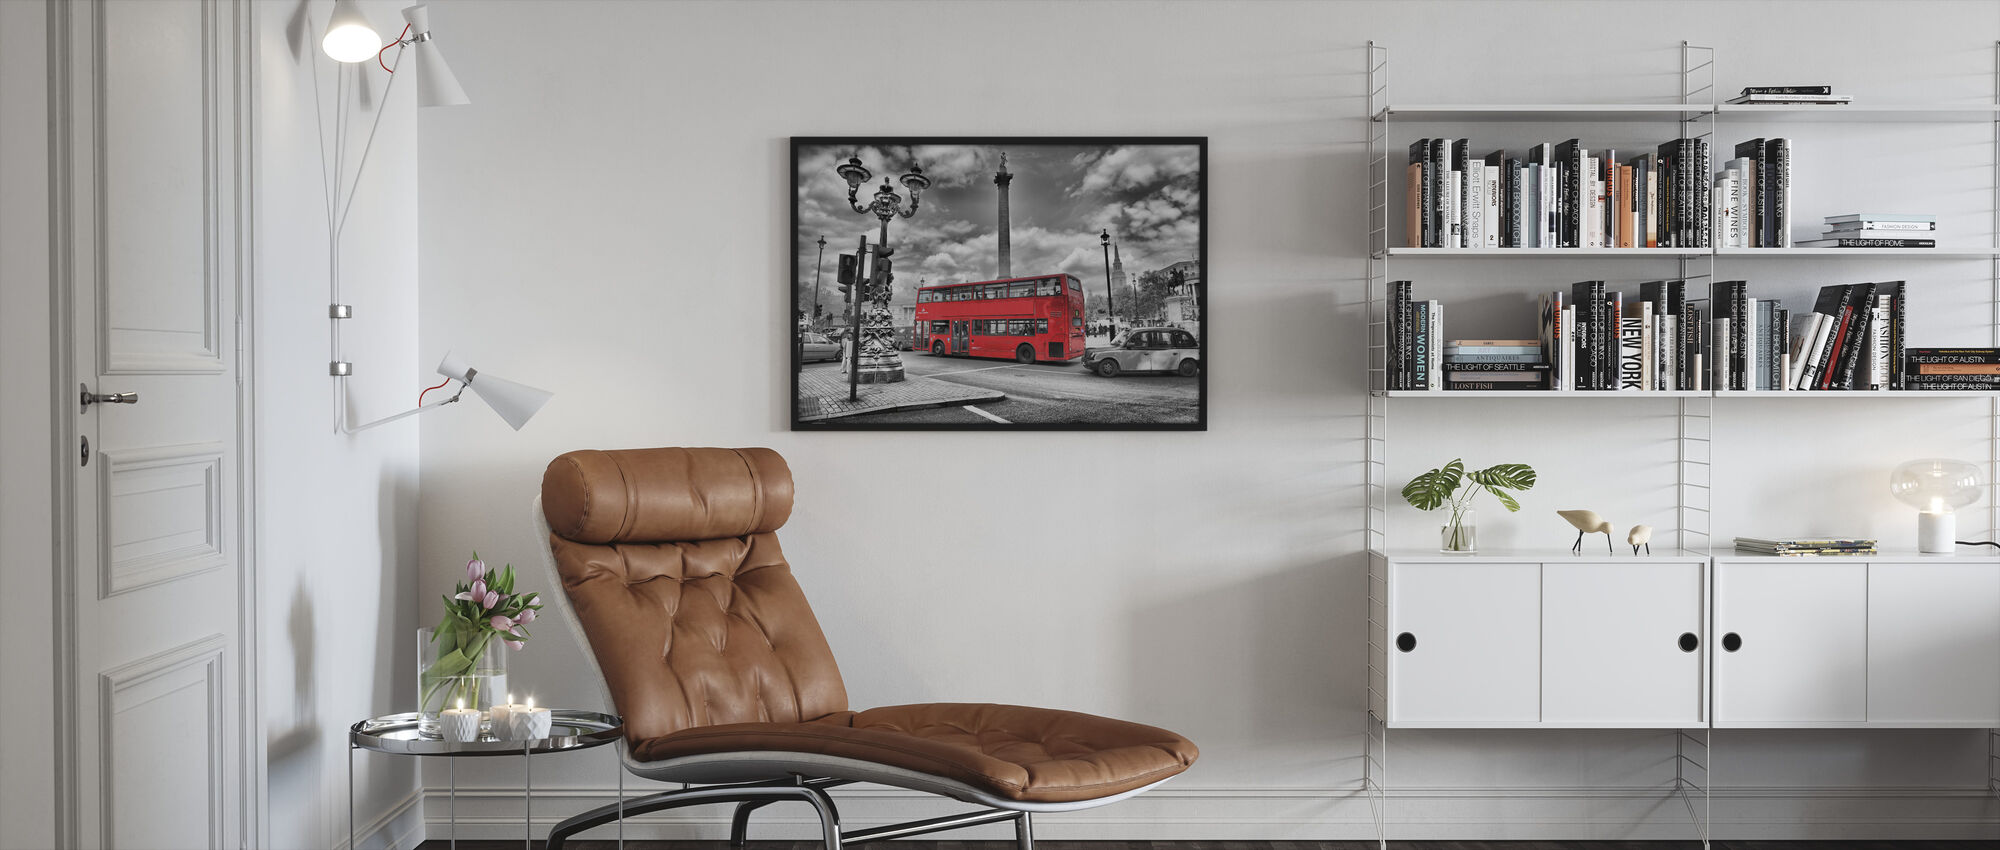 London Bus - Colorsplash - Framed print - Living Room